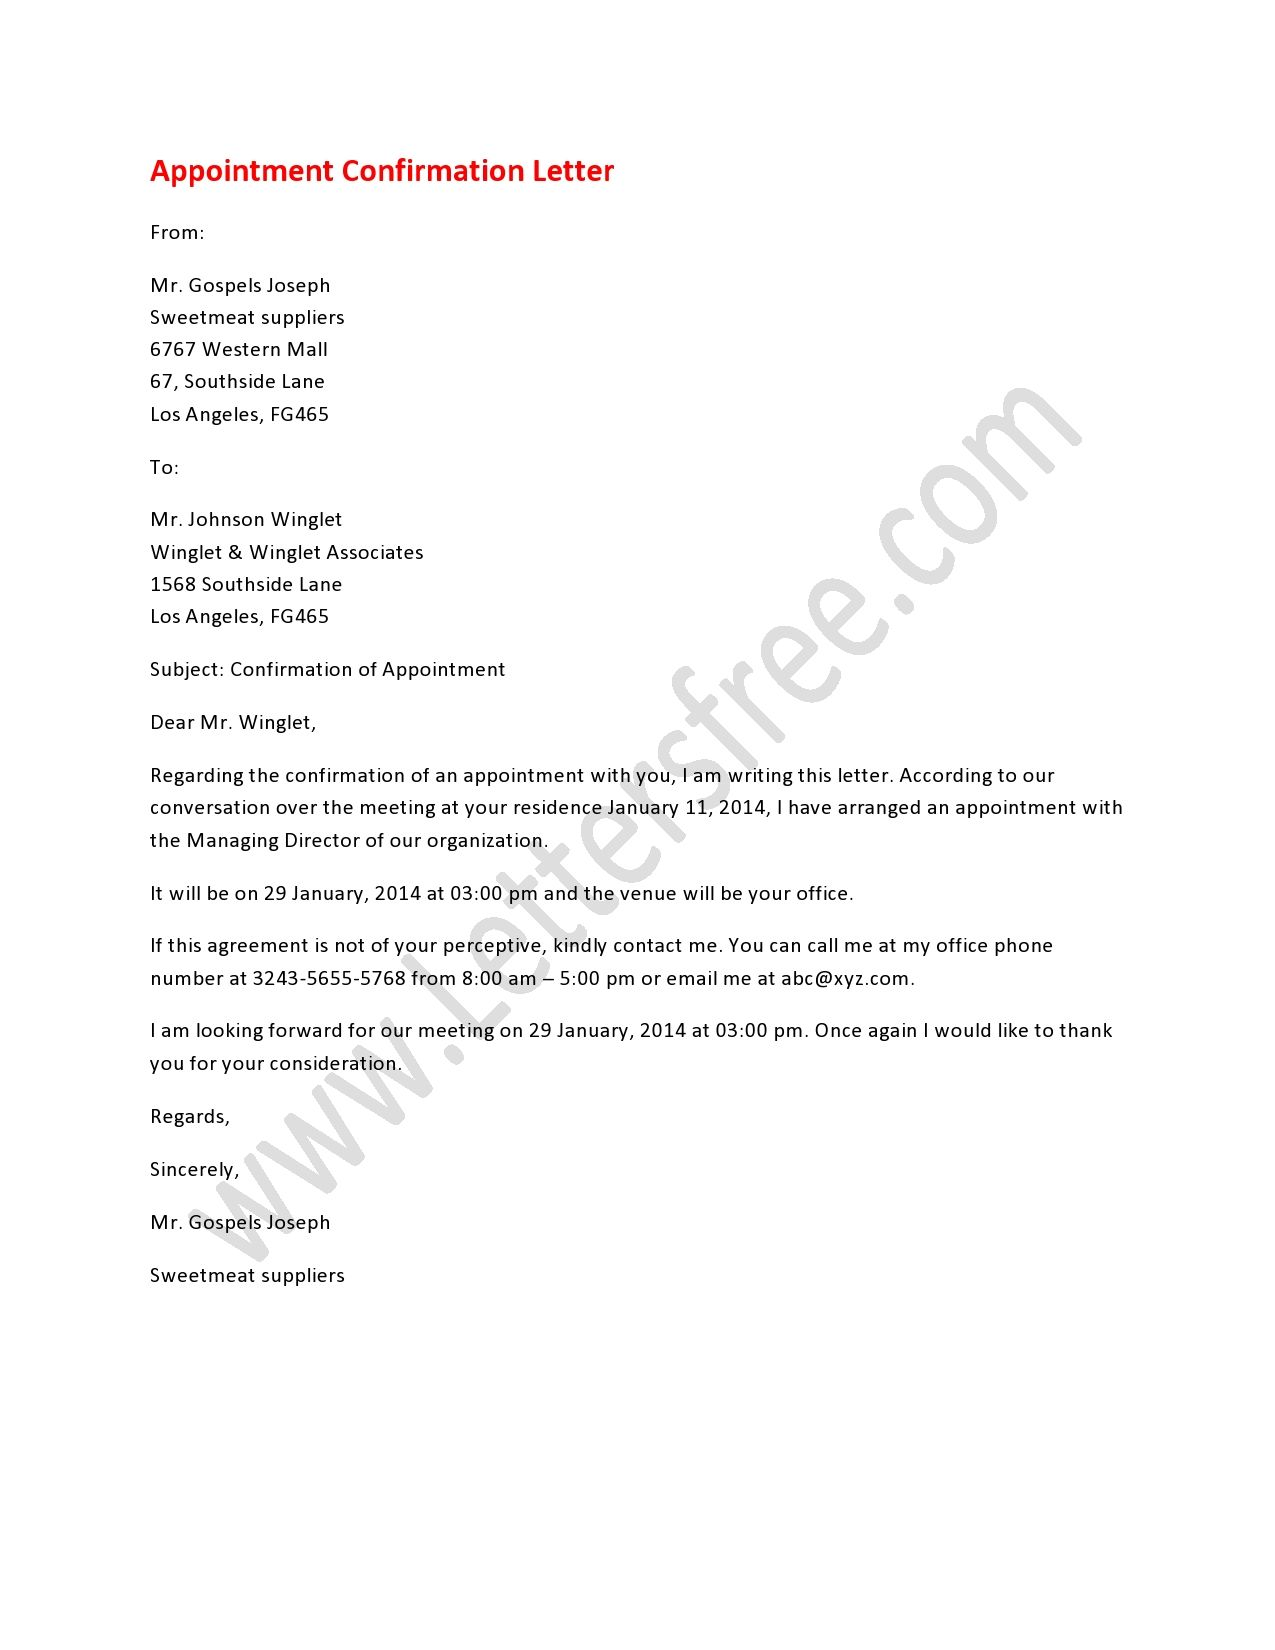 Appointment Confirmation Letter  Letter Example Appointments And